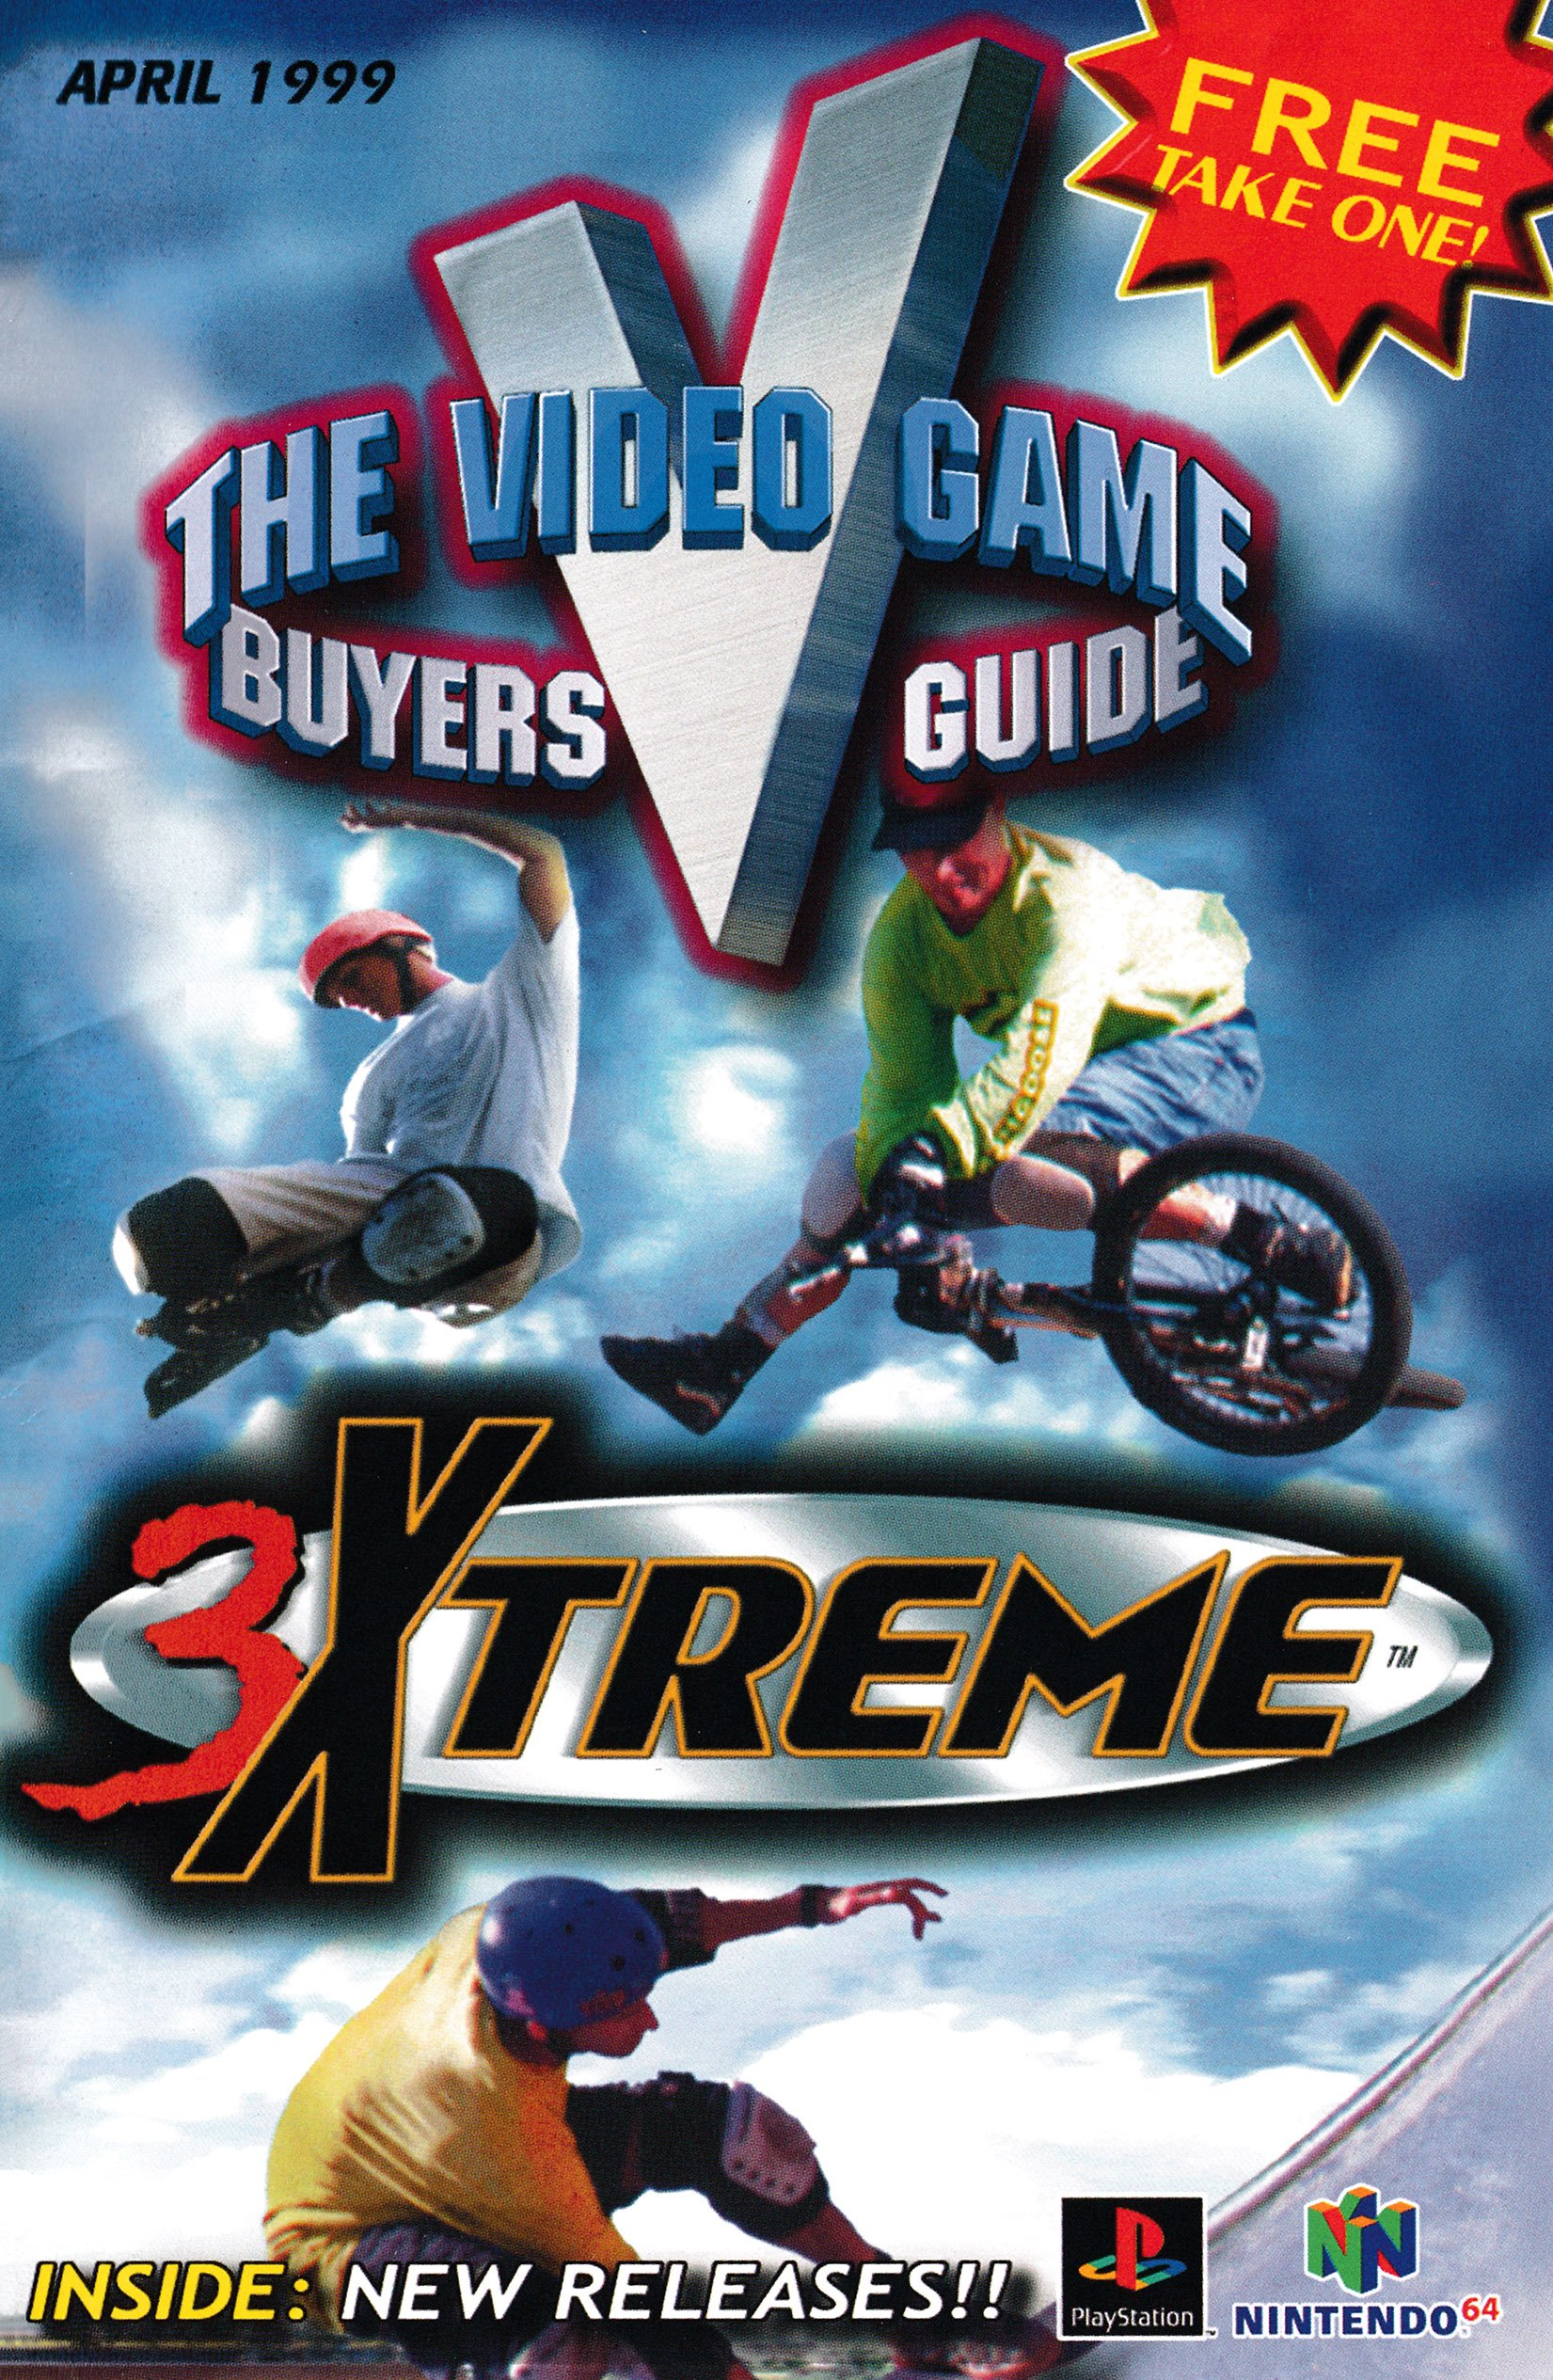 The Video Game Buyers Guide (April 1999)